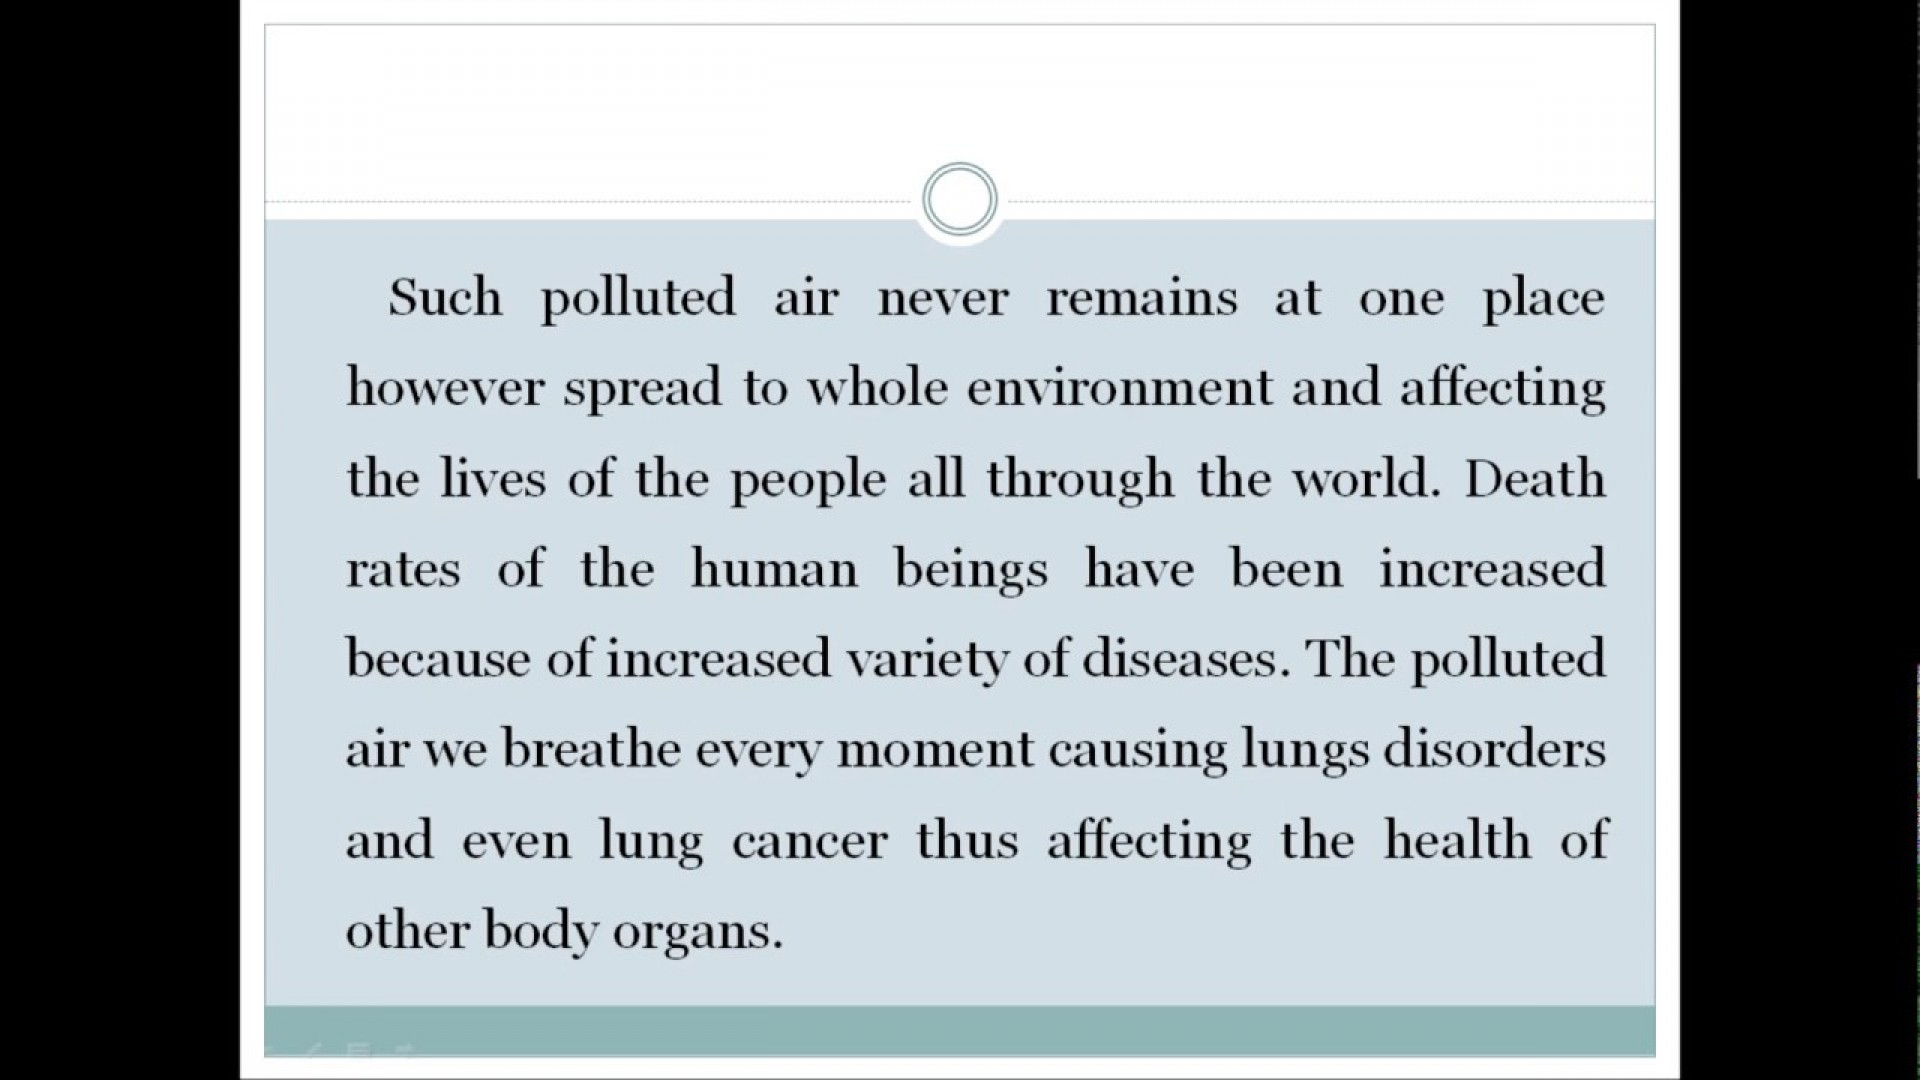 012 Essay Example Cause And Effect On Pollution Astounding About Air In Cities Environmental 1920